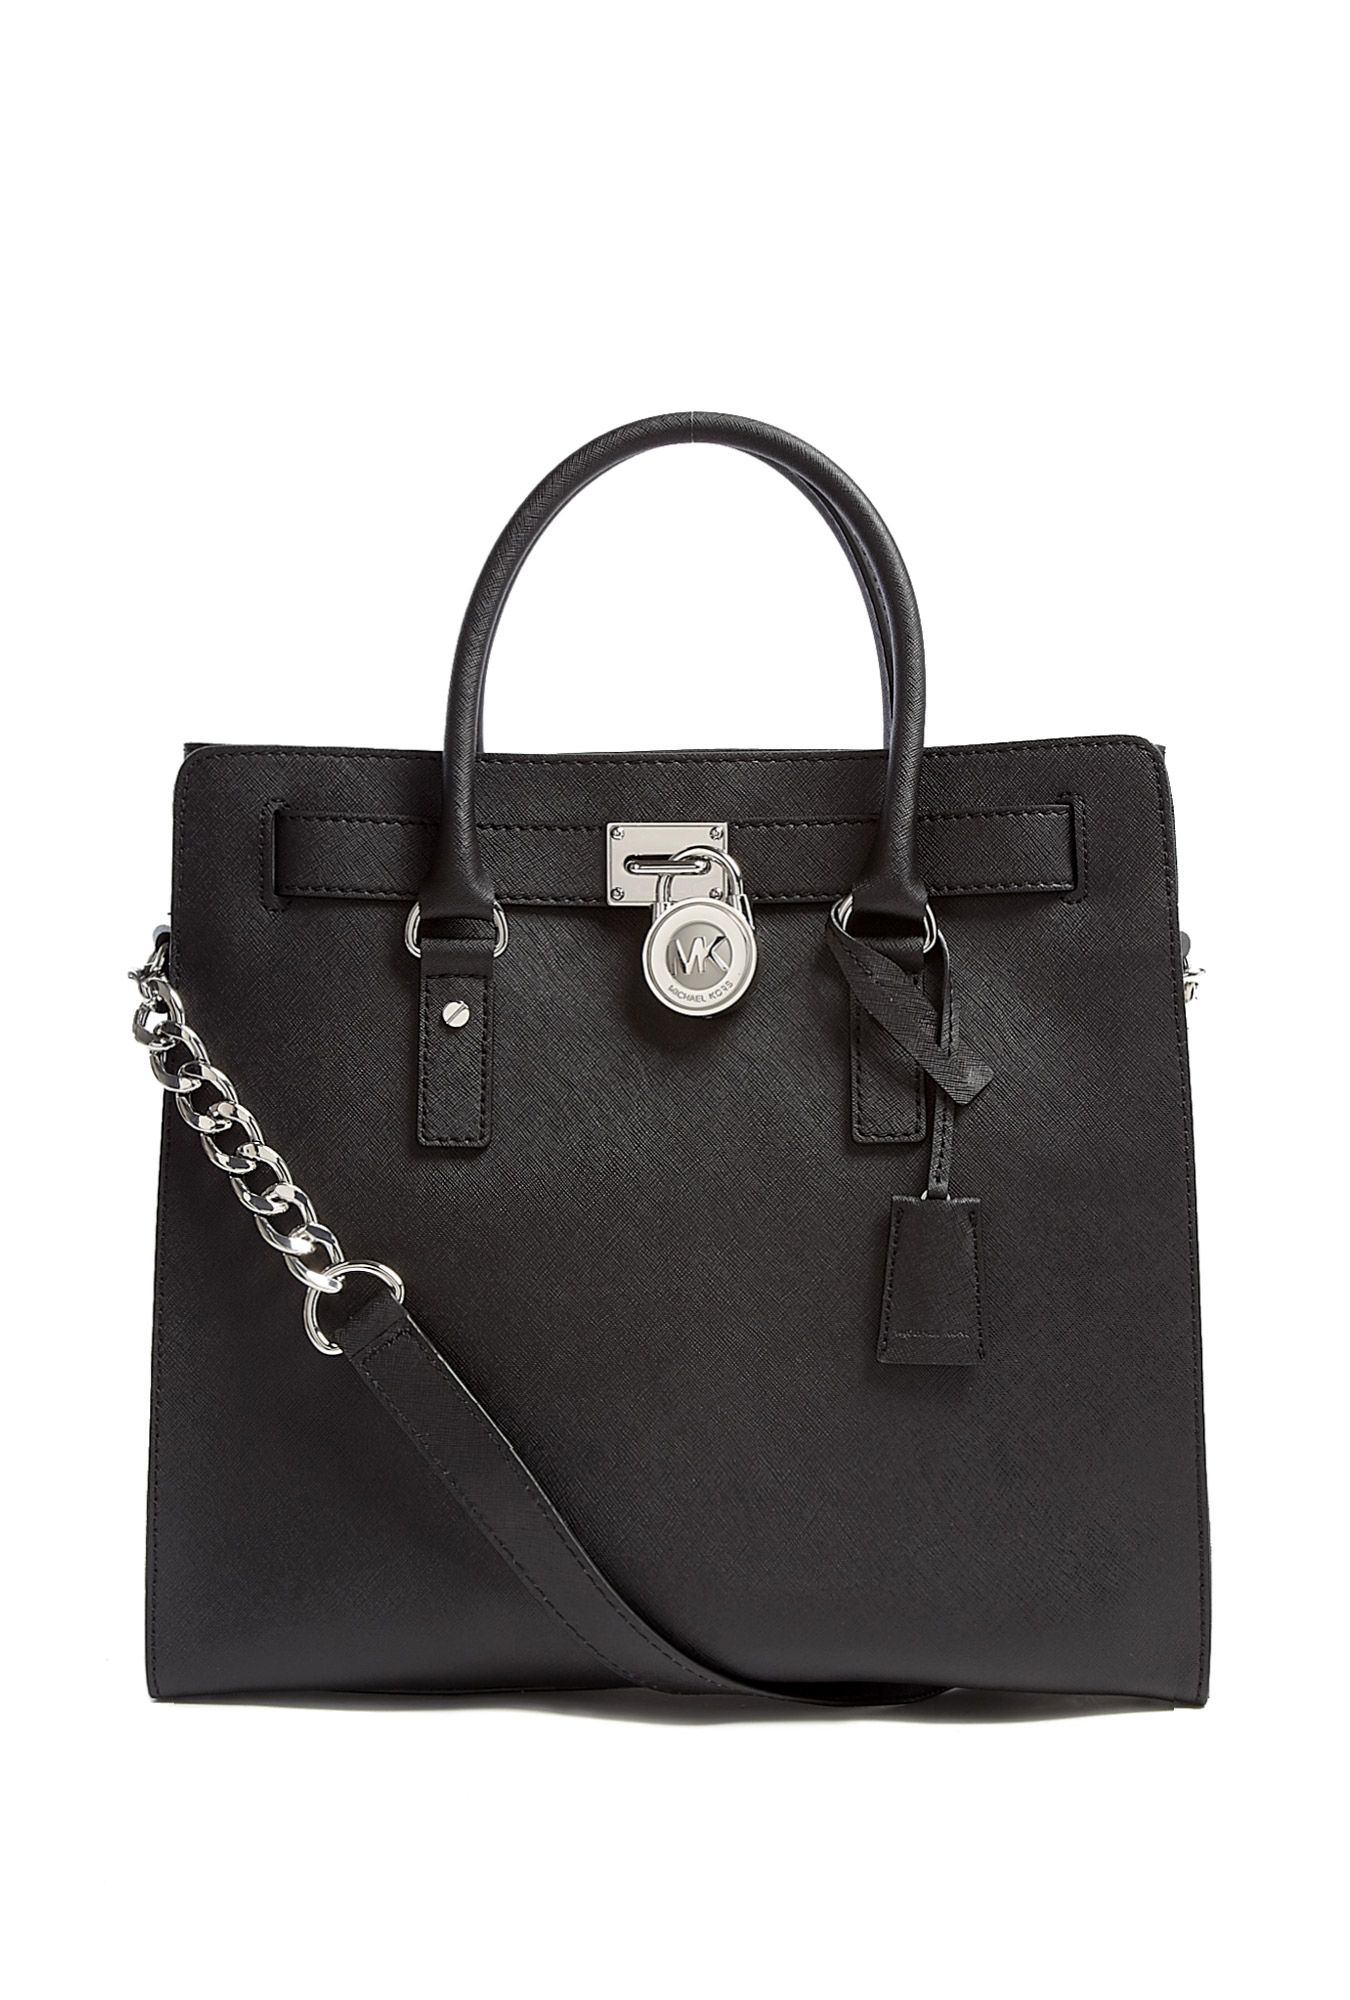 Black Large Hamilton North South Tote by MICHAEL Michael Kors